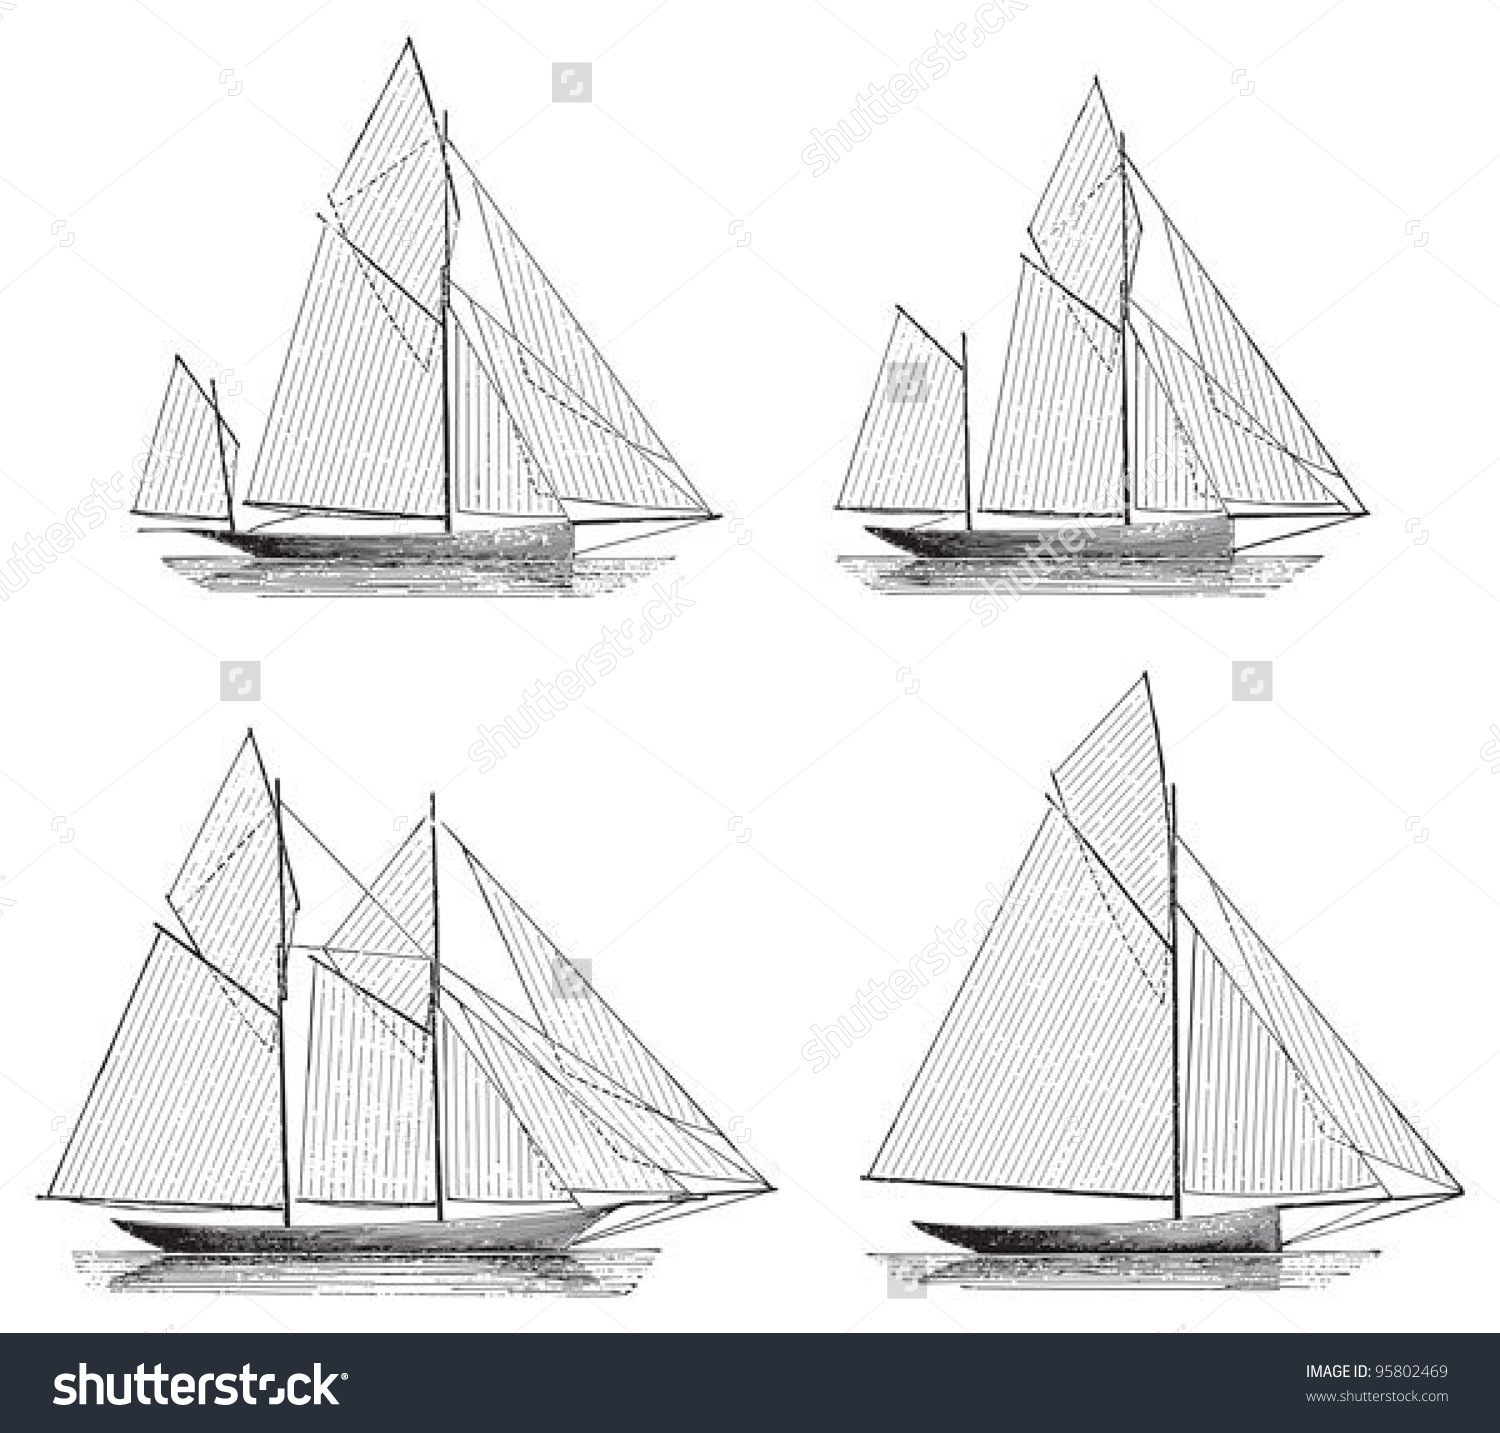 Sailing Boat Yawl Ketch Schooner Sloop Stock Vector 95802469.